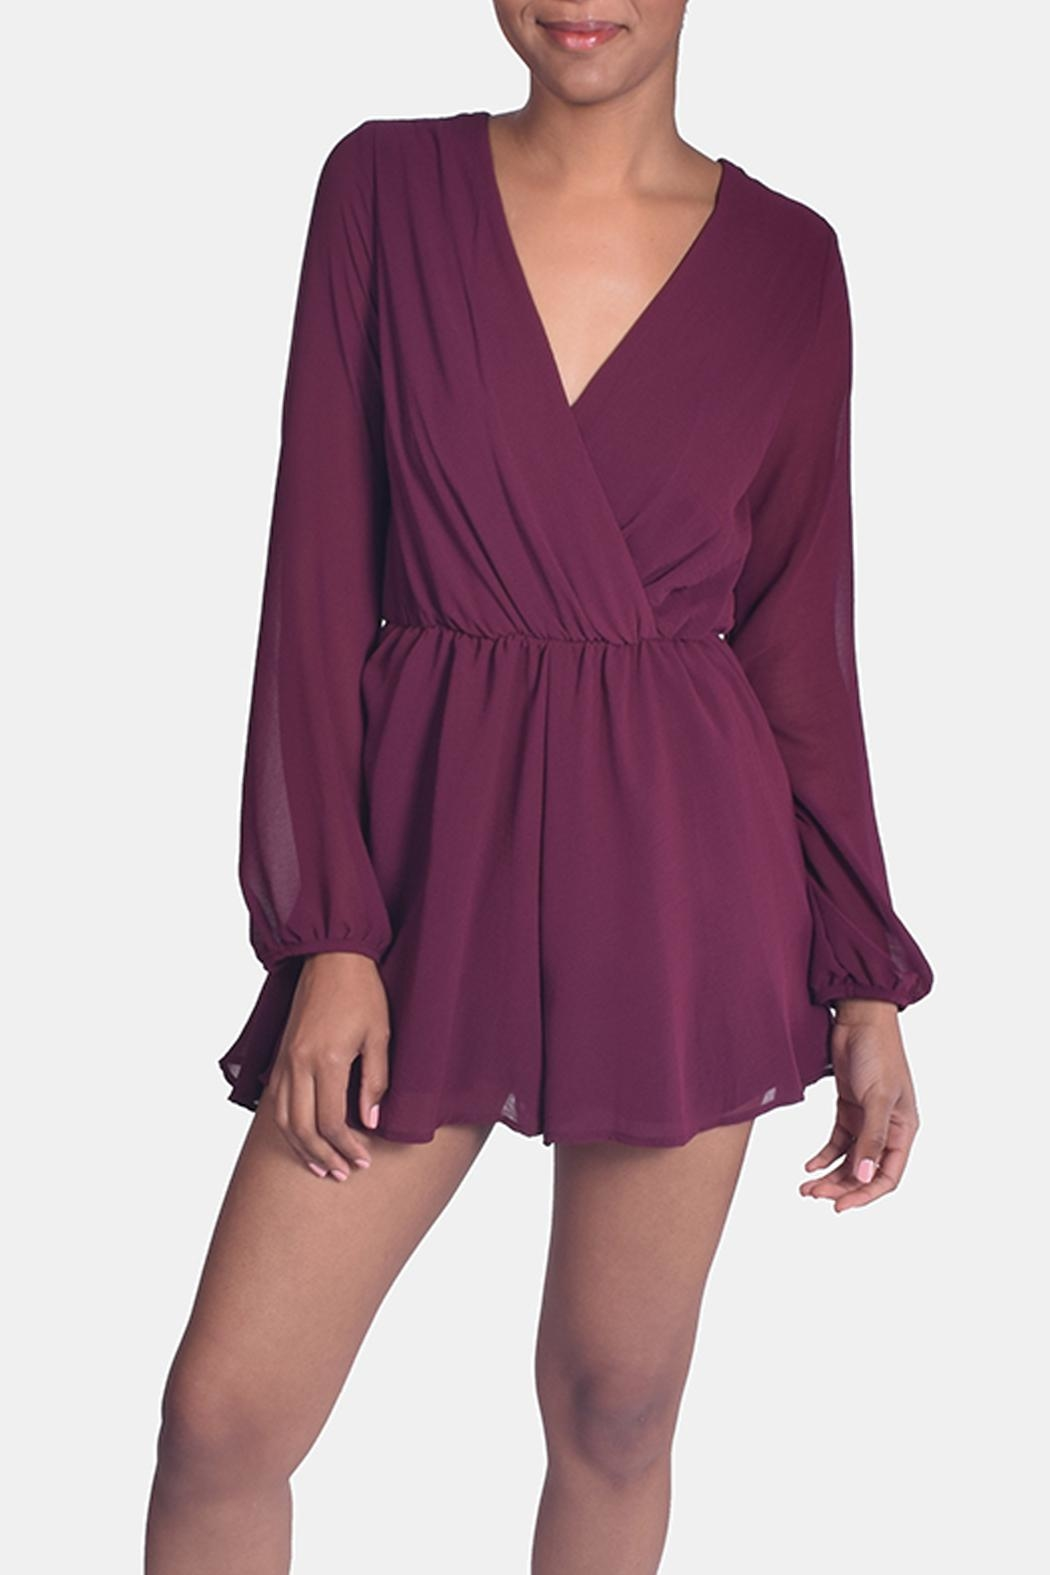 Final Touch Wine Chiffon Romper - Main Image